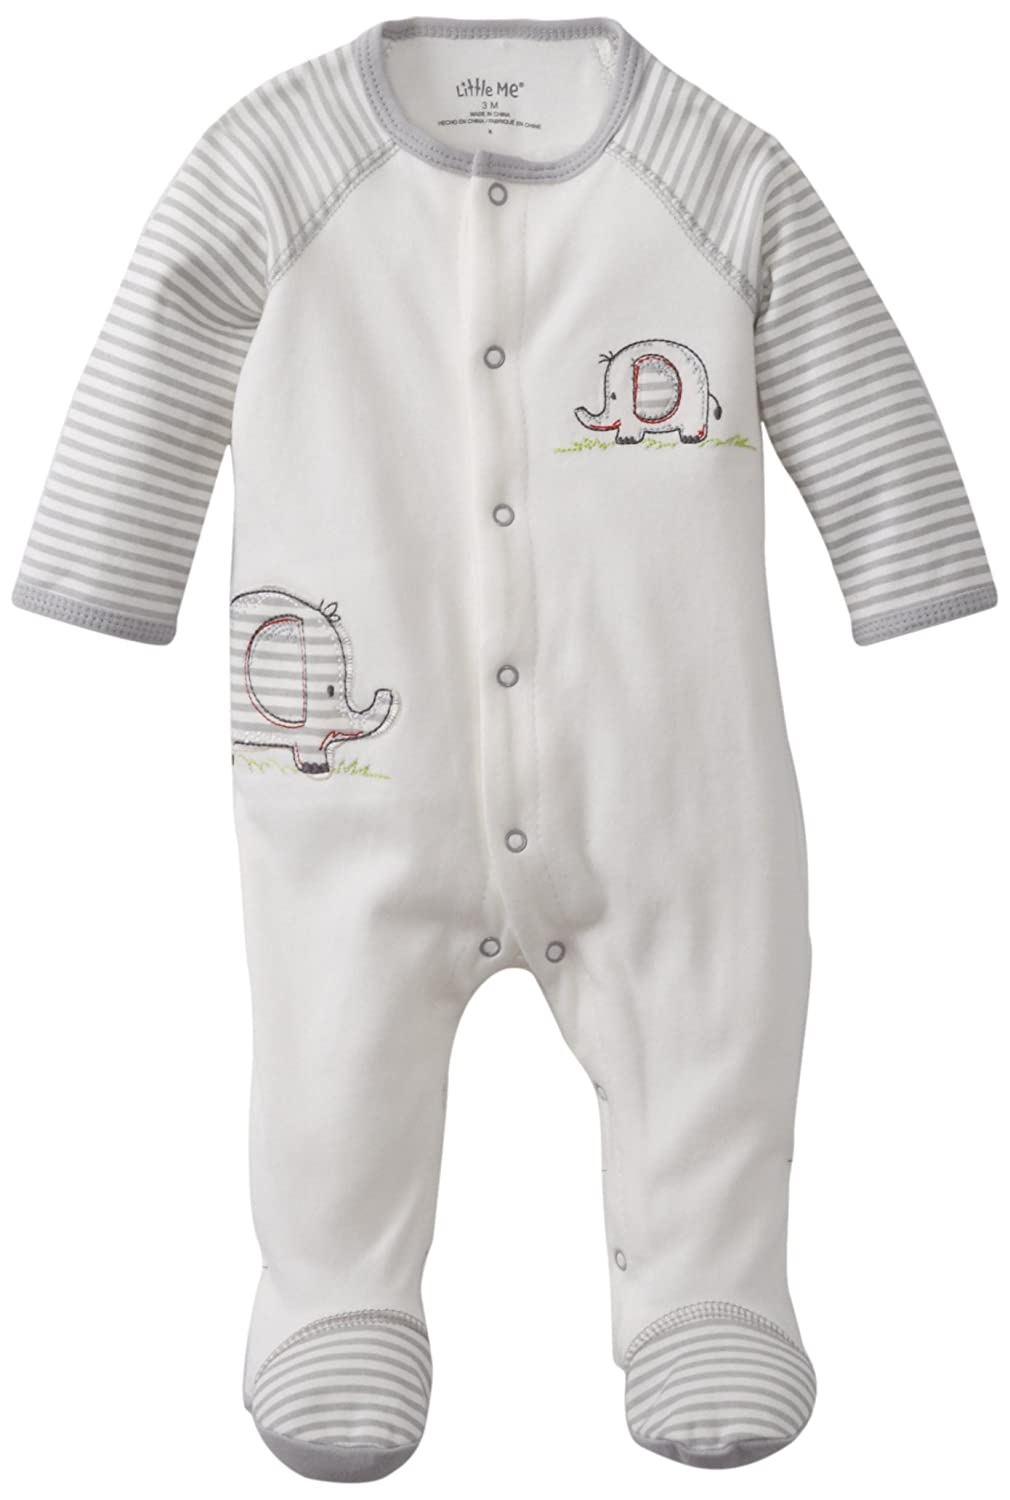 Newborn baby boy clothes at walmart images amp pictures becuo